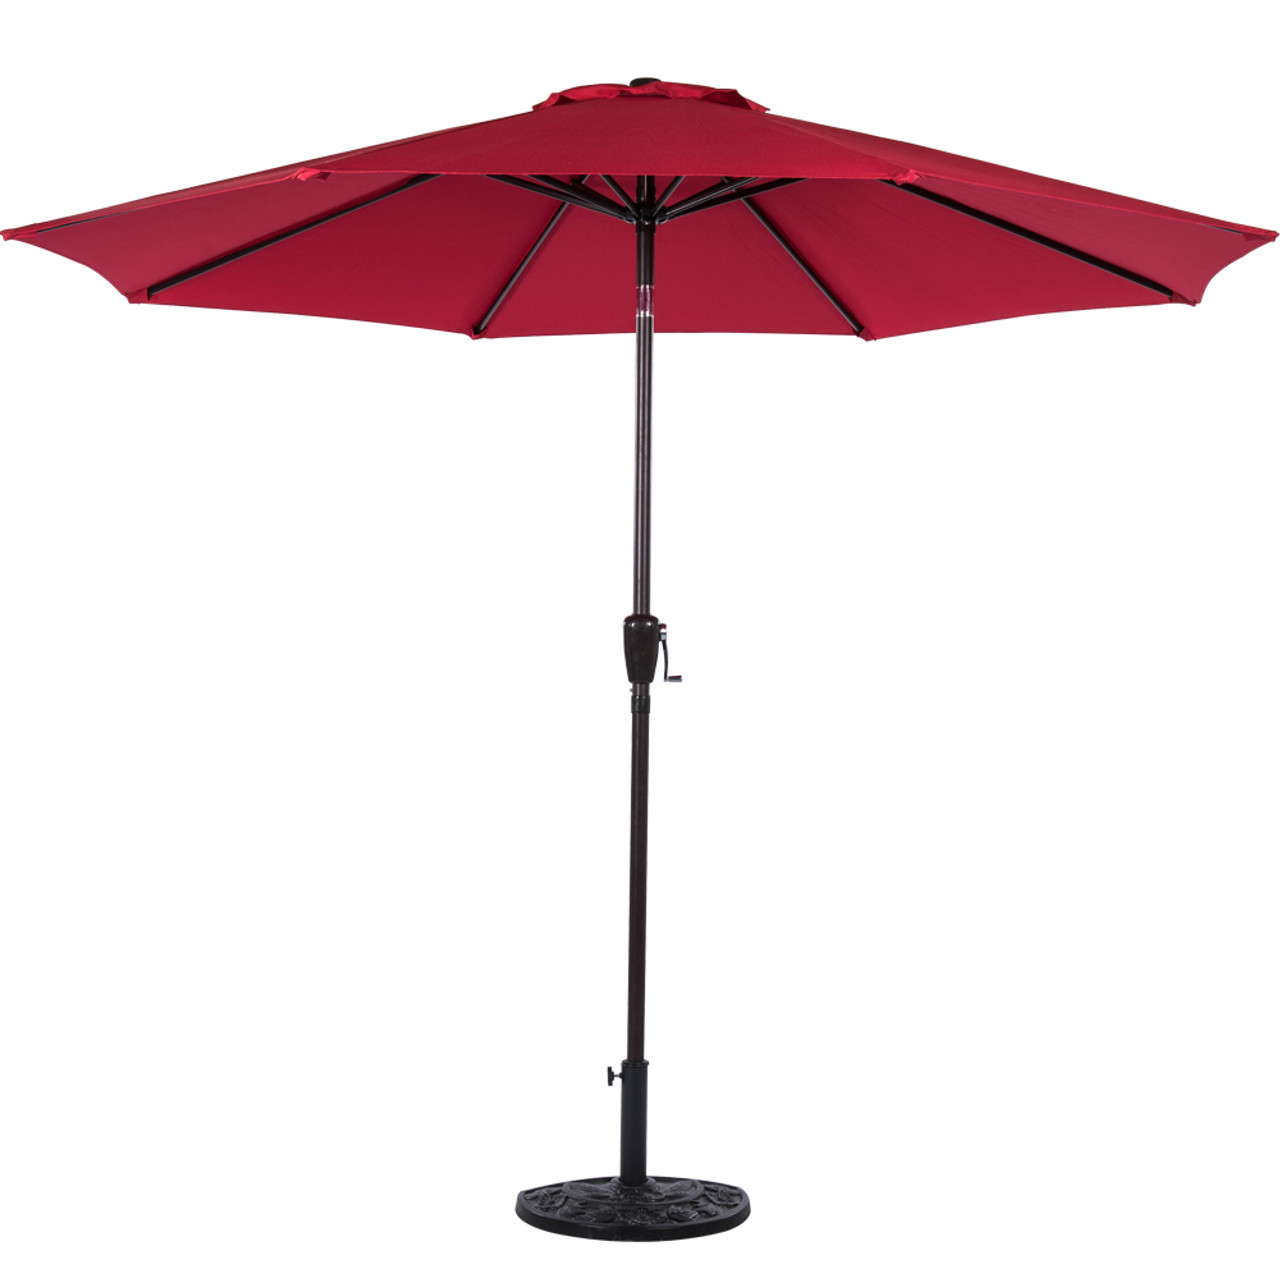 Sundale 9 Feet Polyester Patio Umbrella With Auto Tilt, Crank And 8  Aluminum Ribs, Red